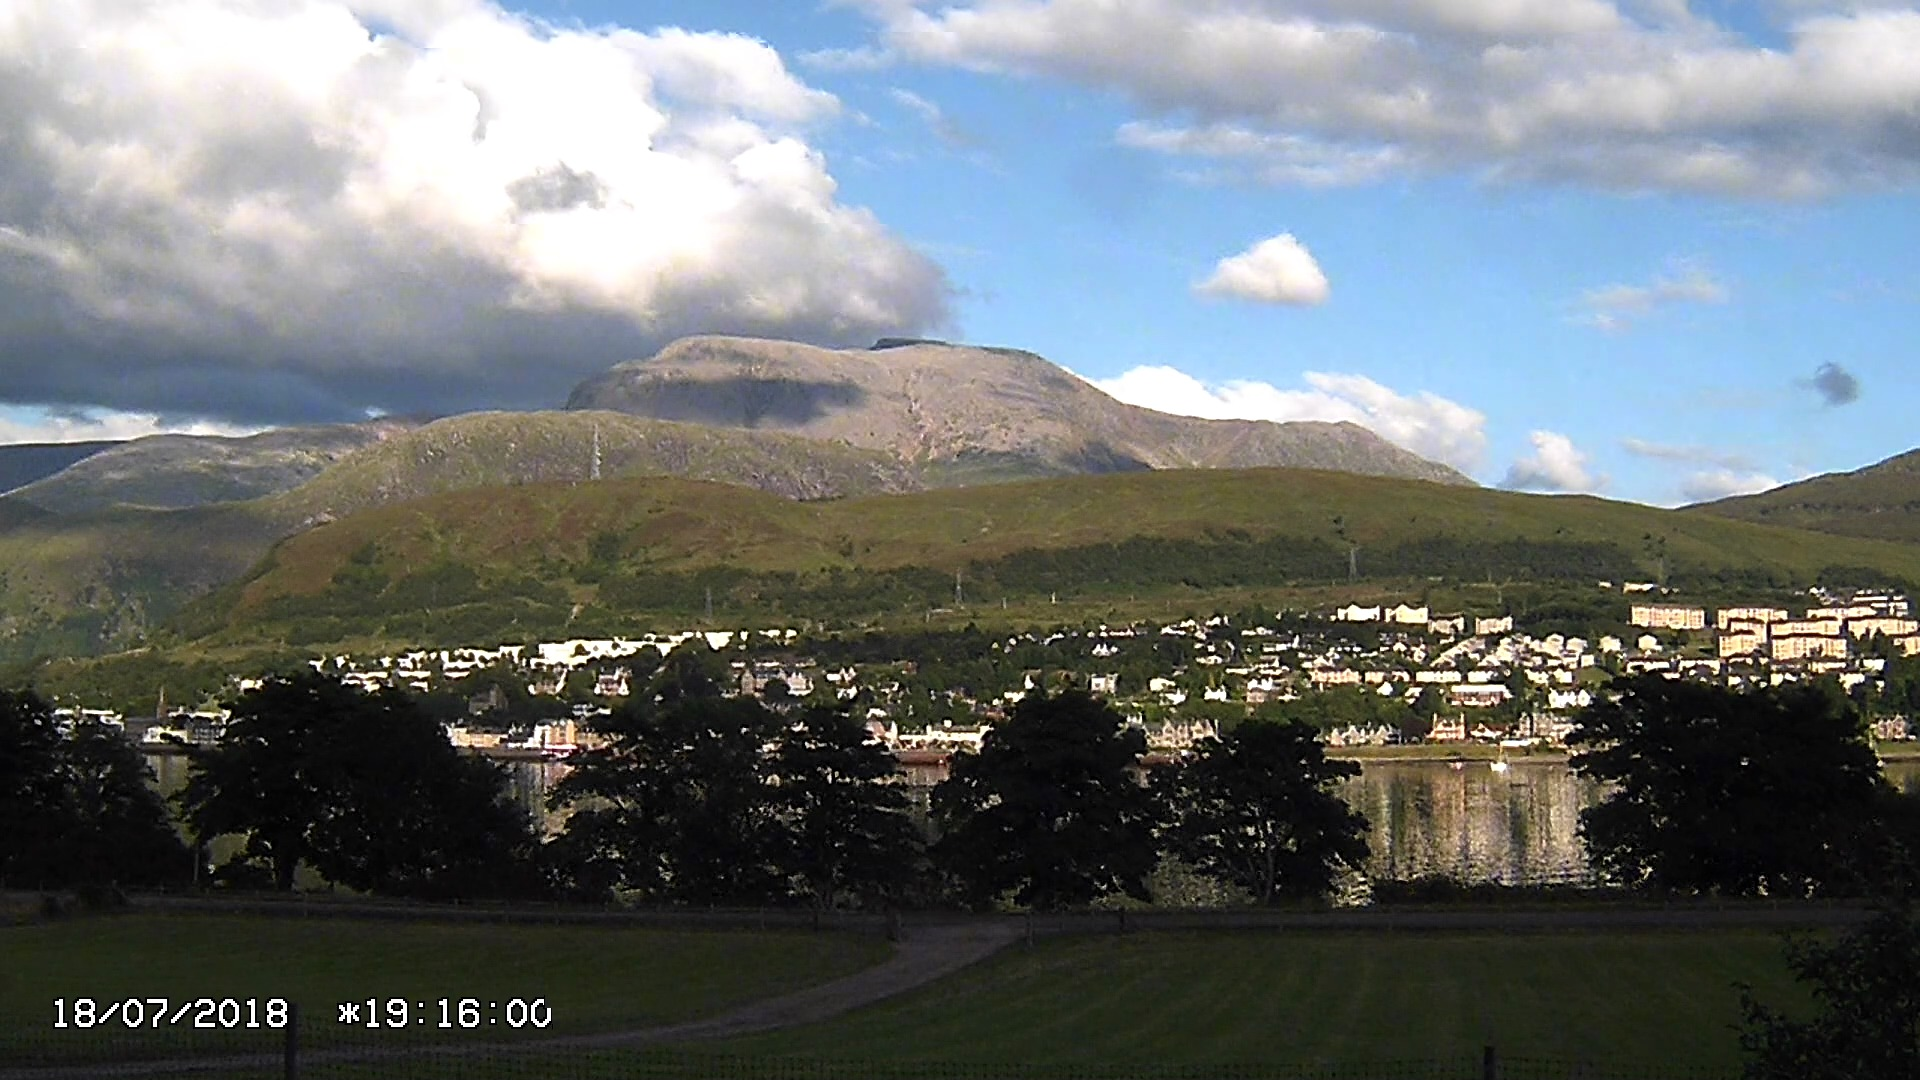 Latest Ben Nevis Webcam Image